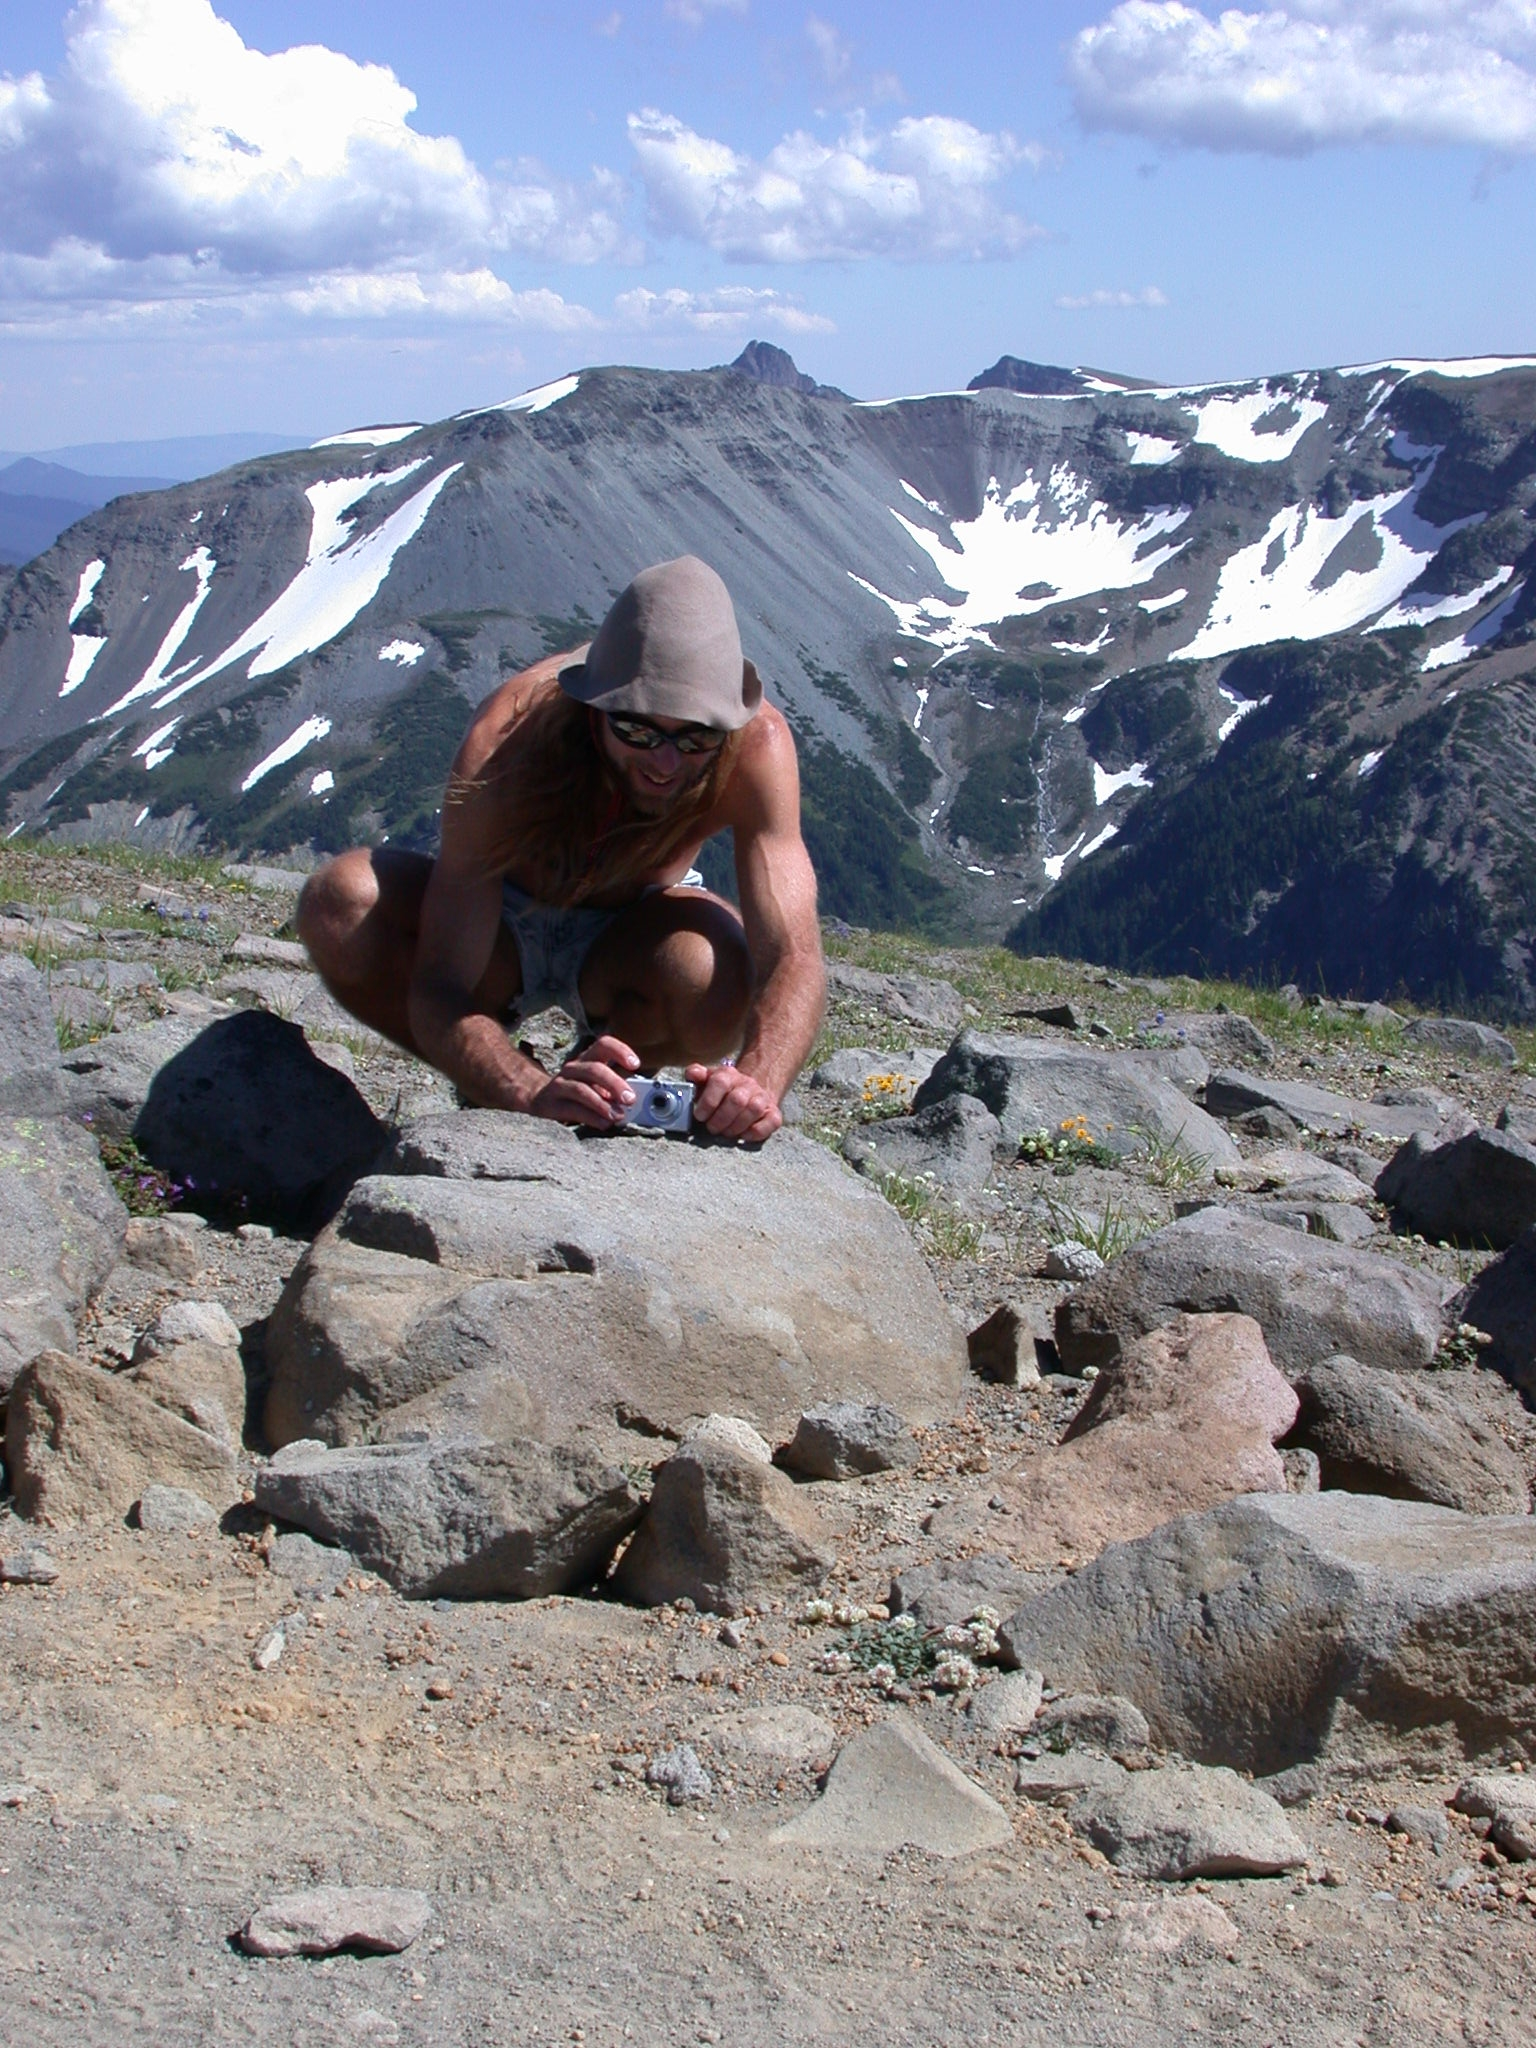 Sierra Prepping Photo Shoot on Burroughs Peak I of Mount Rainier